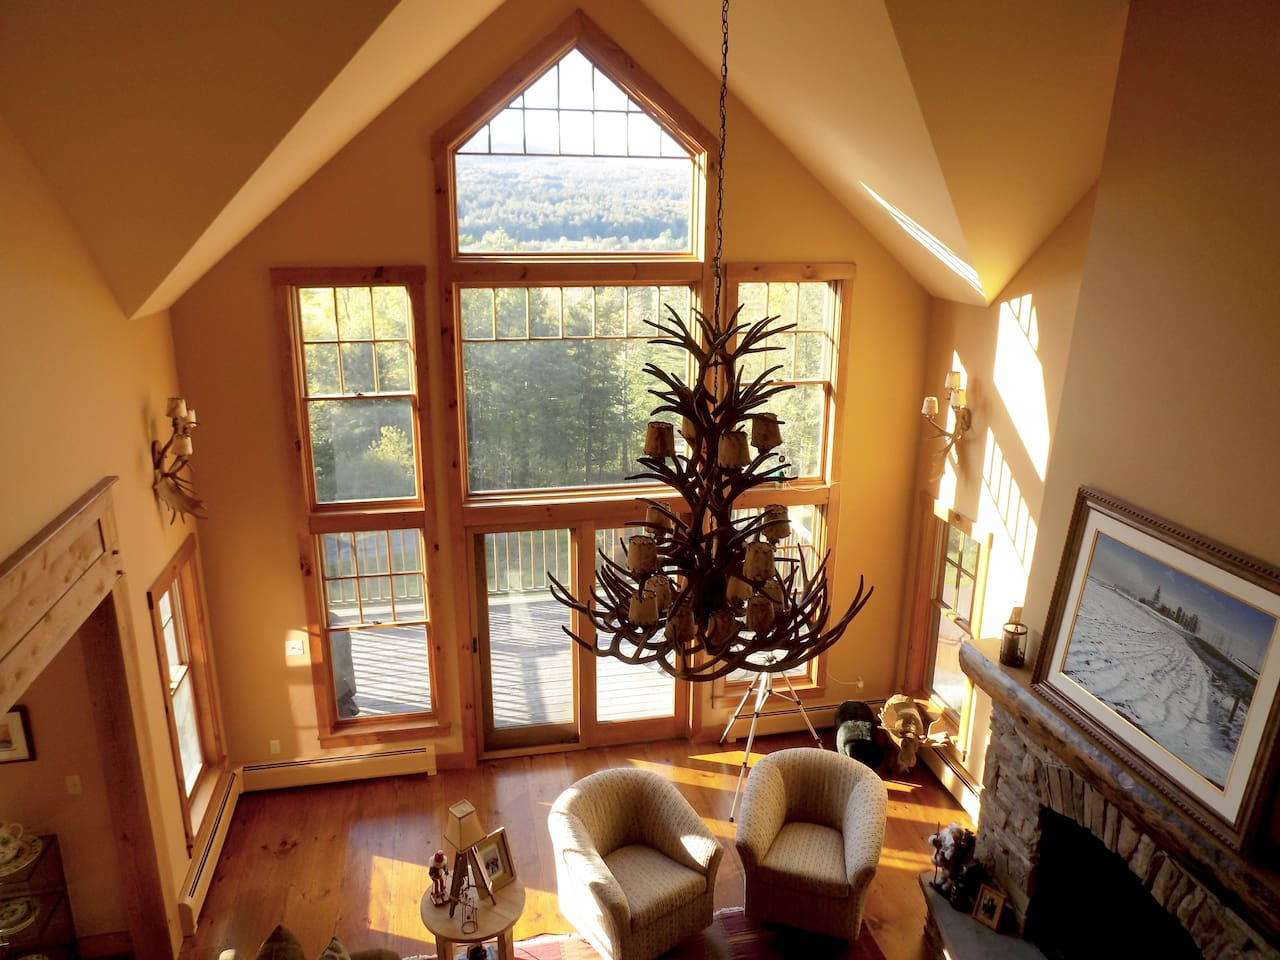 Dramatic views of Mt. Mansfield at the Stowe Mountain Resort from the great room.